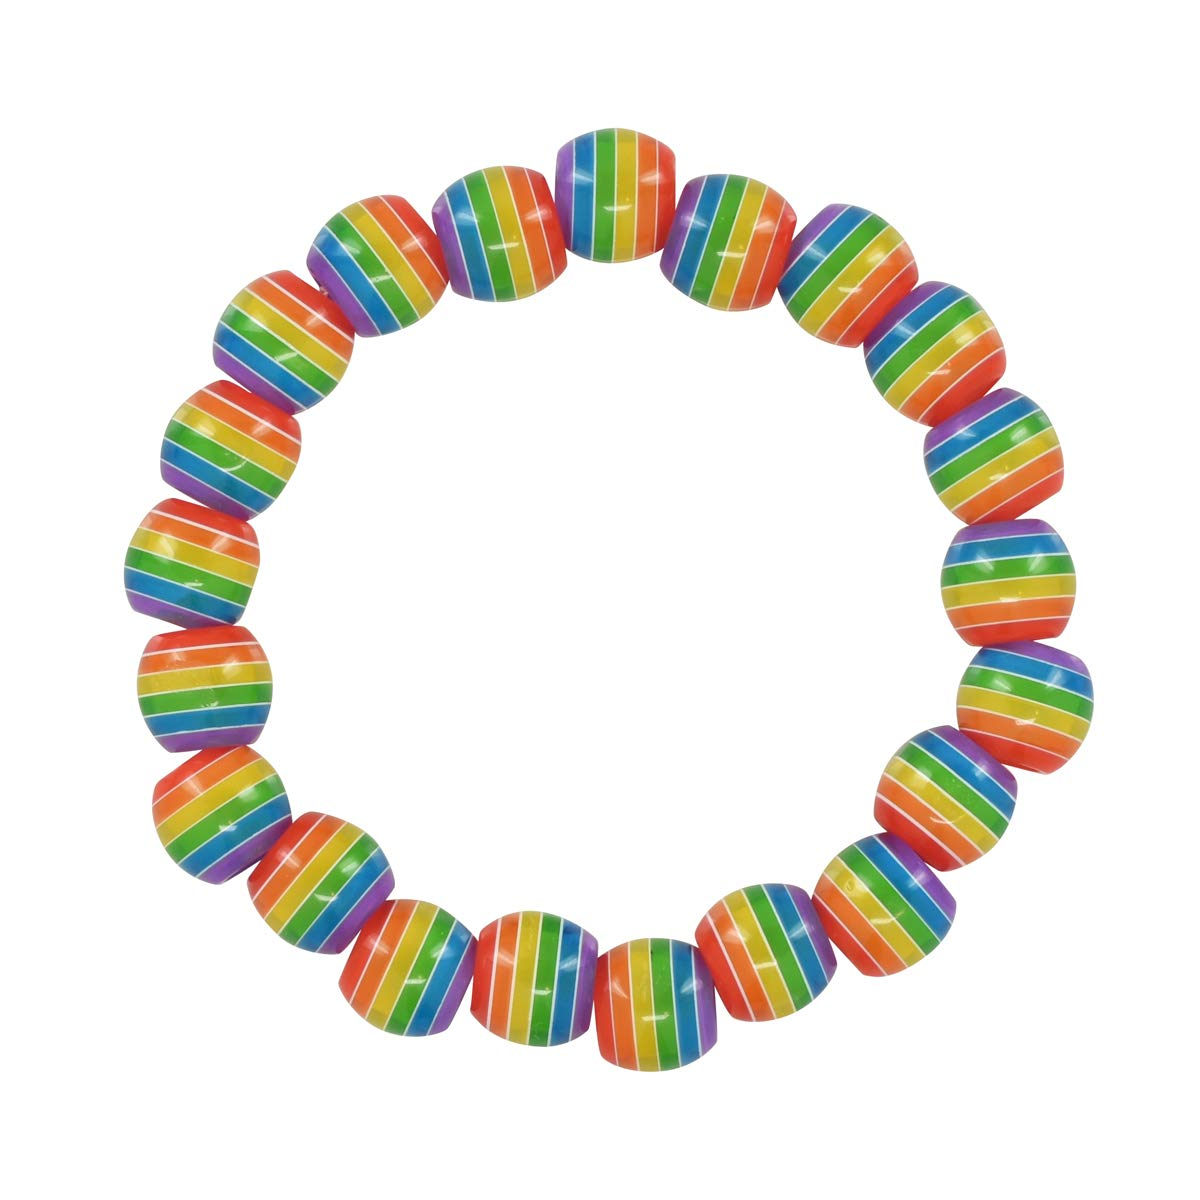 Gay Pride Rainbow Striped Beaded Bracelets (25 Bracelets - Individually Bagged) by Fundraising For A Cause (Image #1)